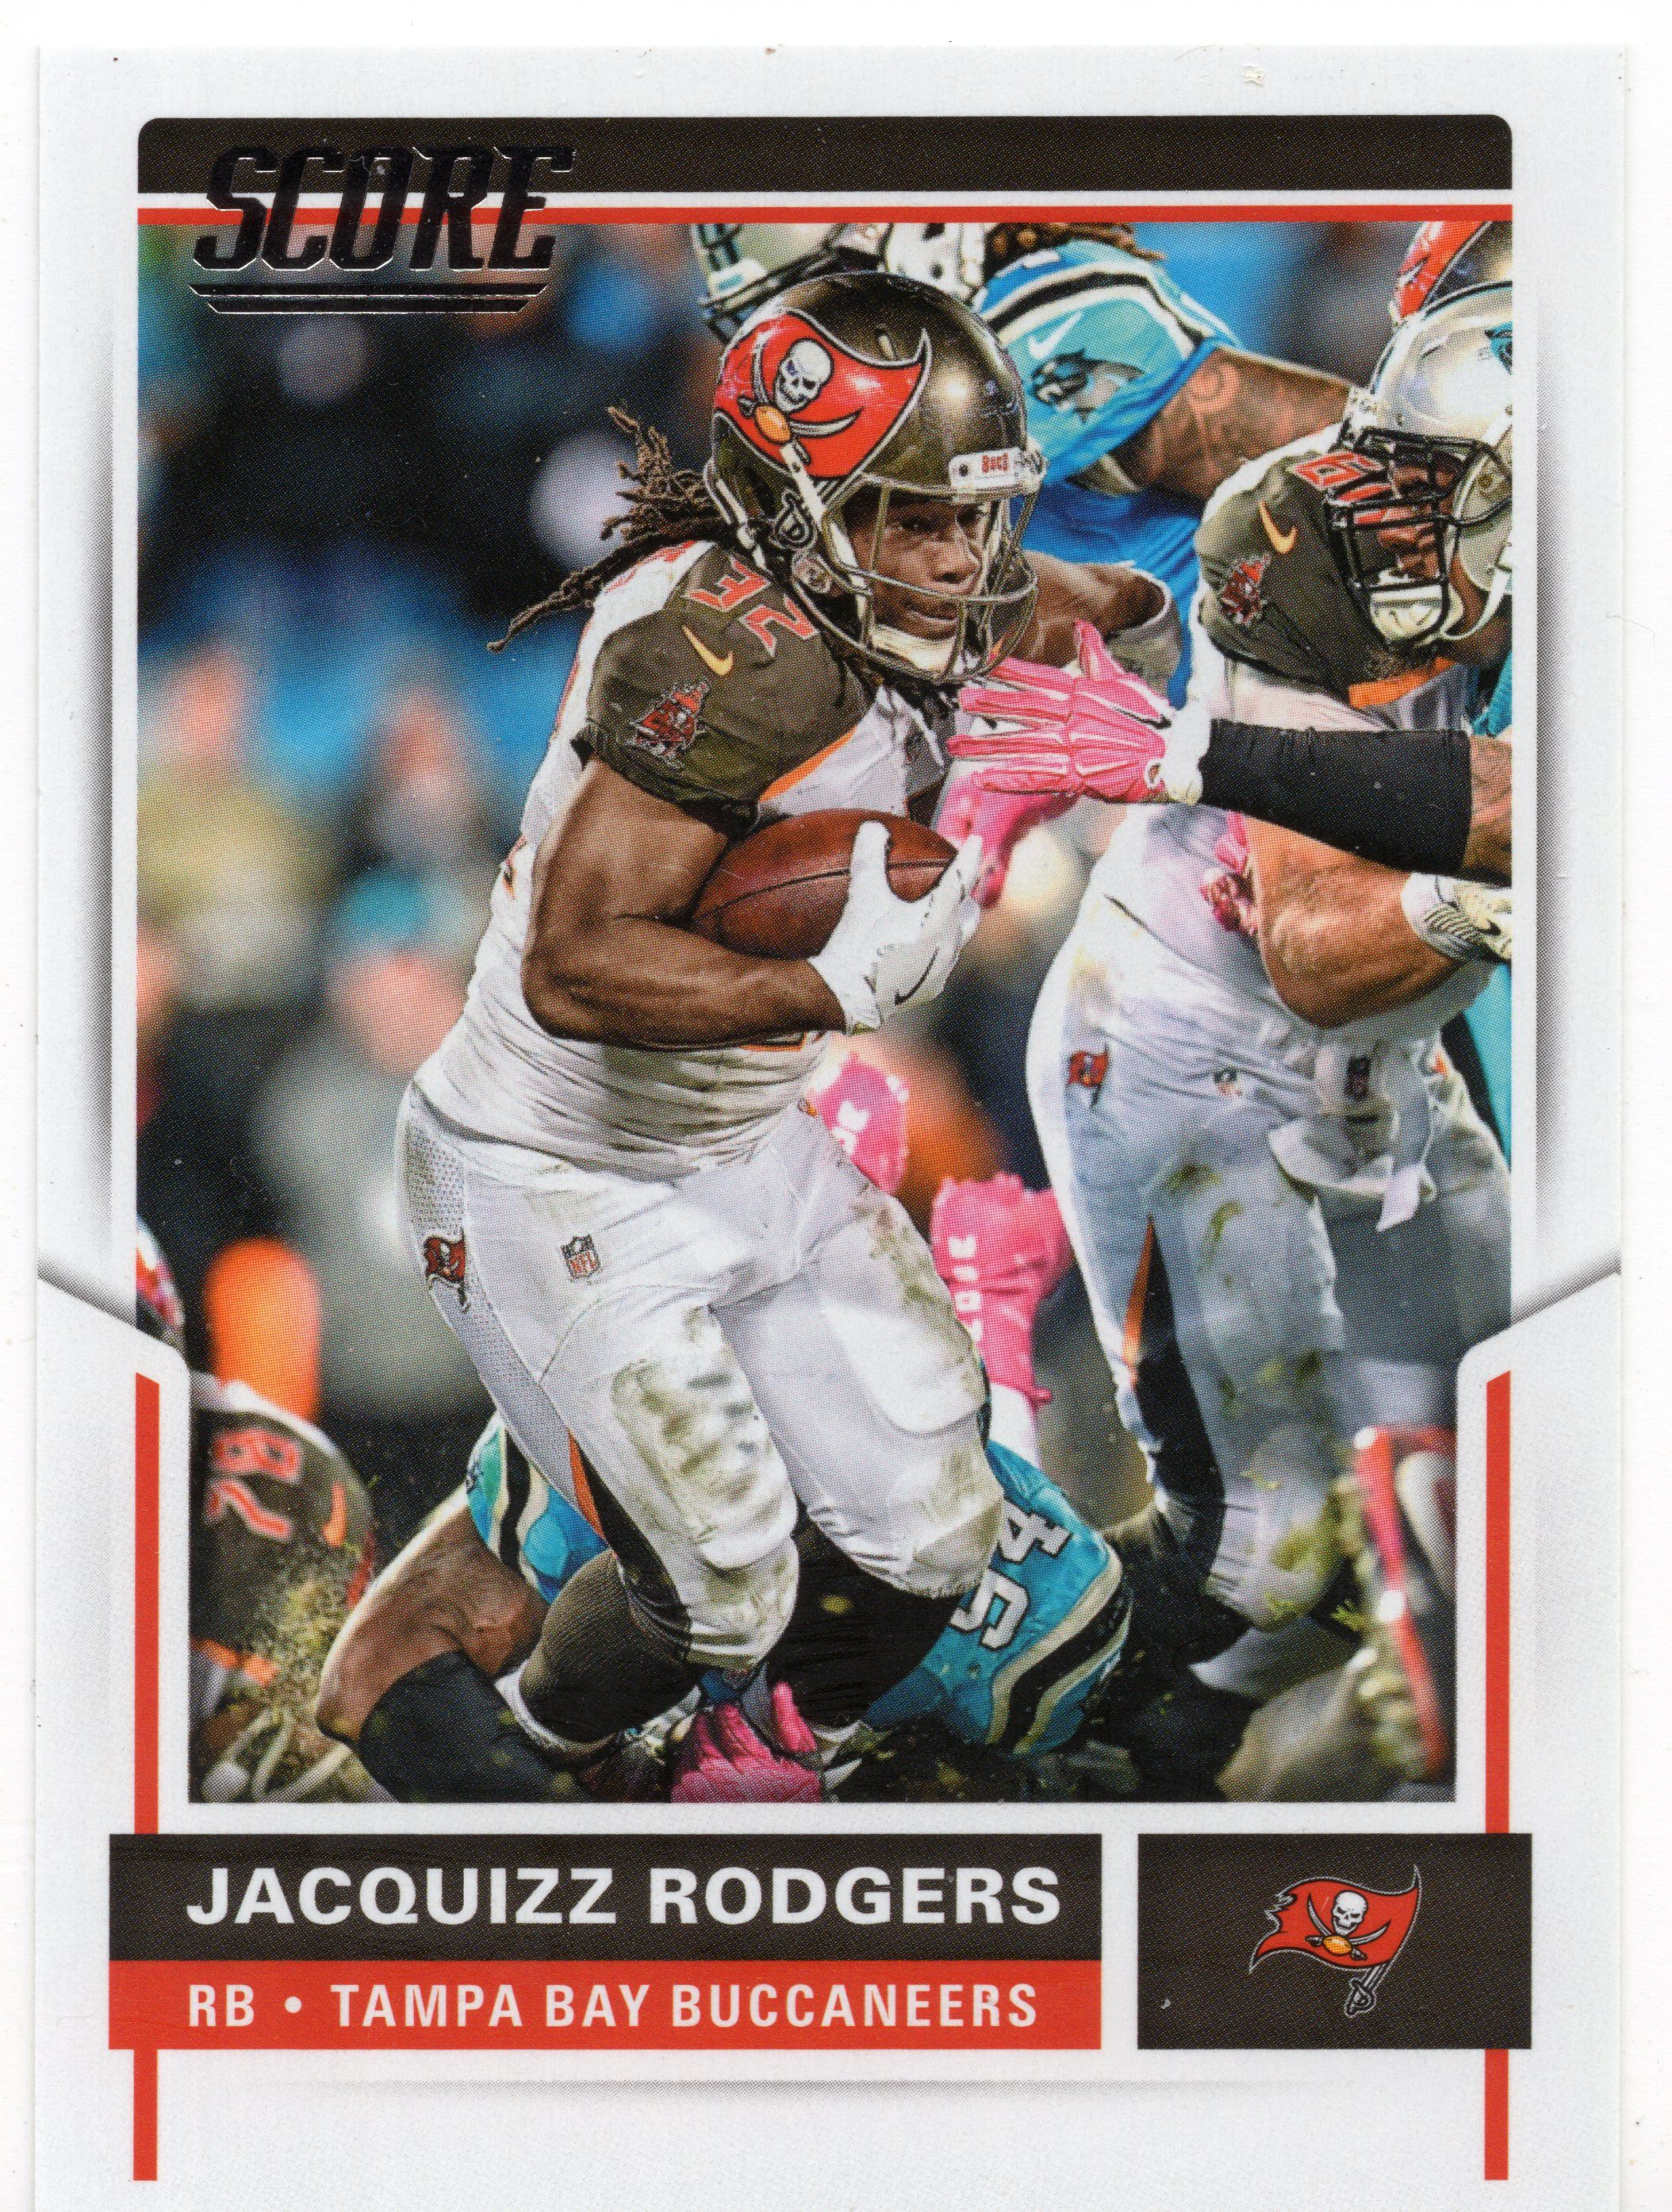 2017 Score Football 299 Jacquizz Rodgers Tampa Bay Buccaneers Fb65 In 2020 Football Trading Cards Tampa Bay Buccaneers Football